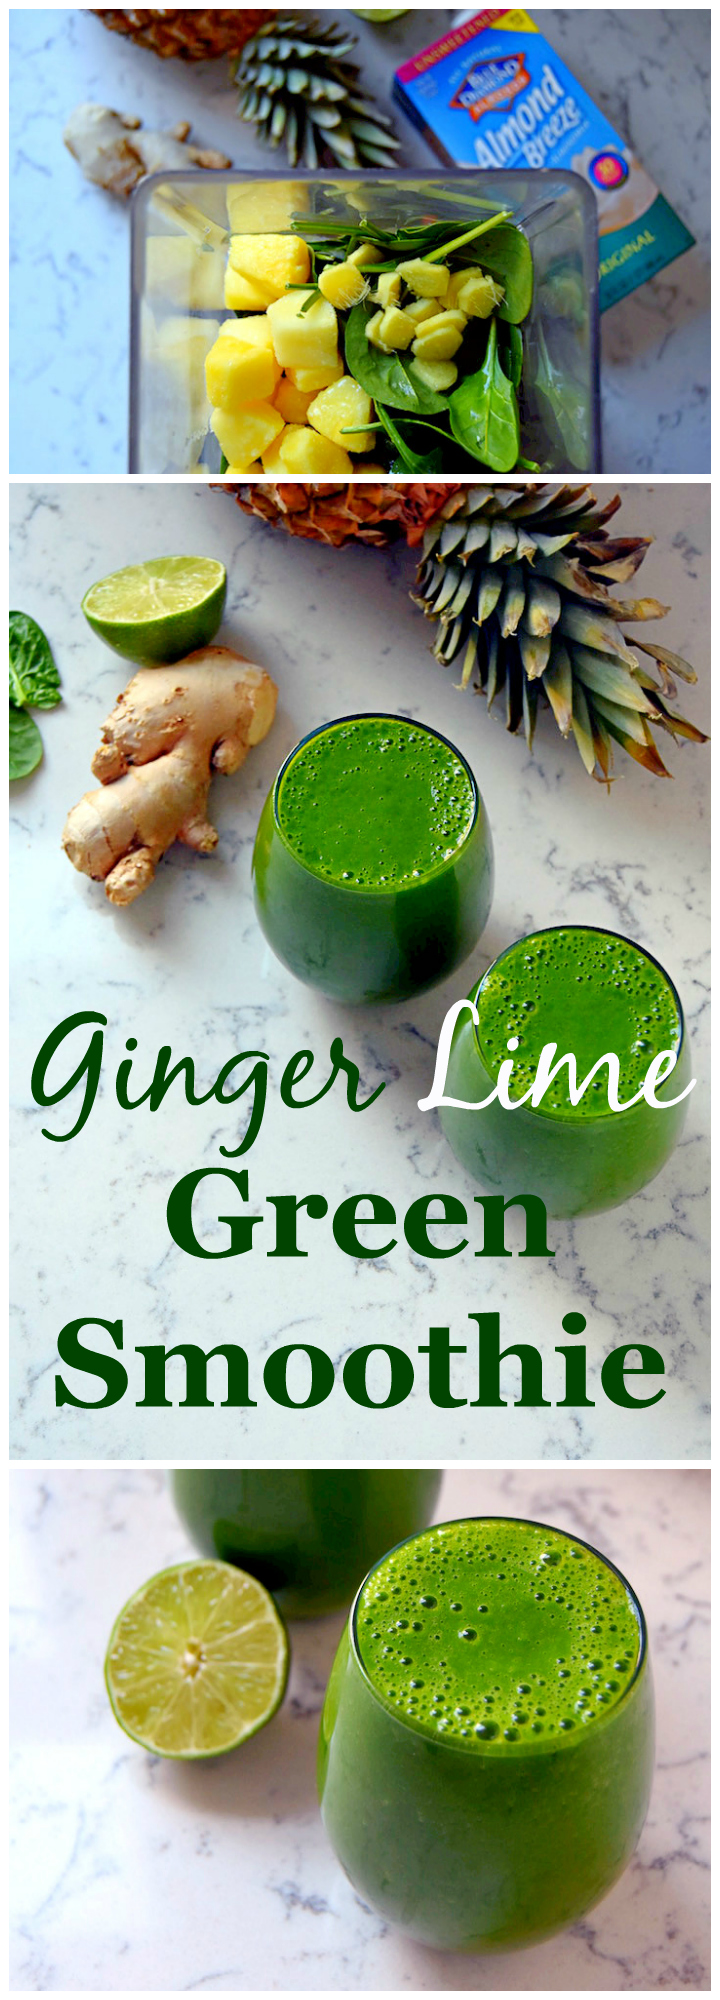 Ginger Lime Green Smoothie, perfect for beating that winter cold with citrus and tropical fruit. | (ad) uprootkitchen.com